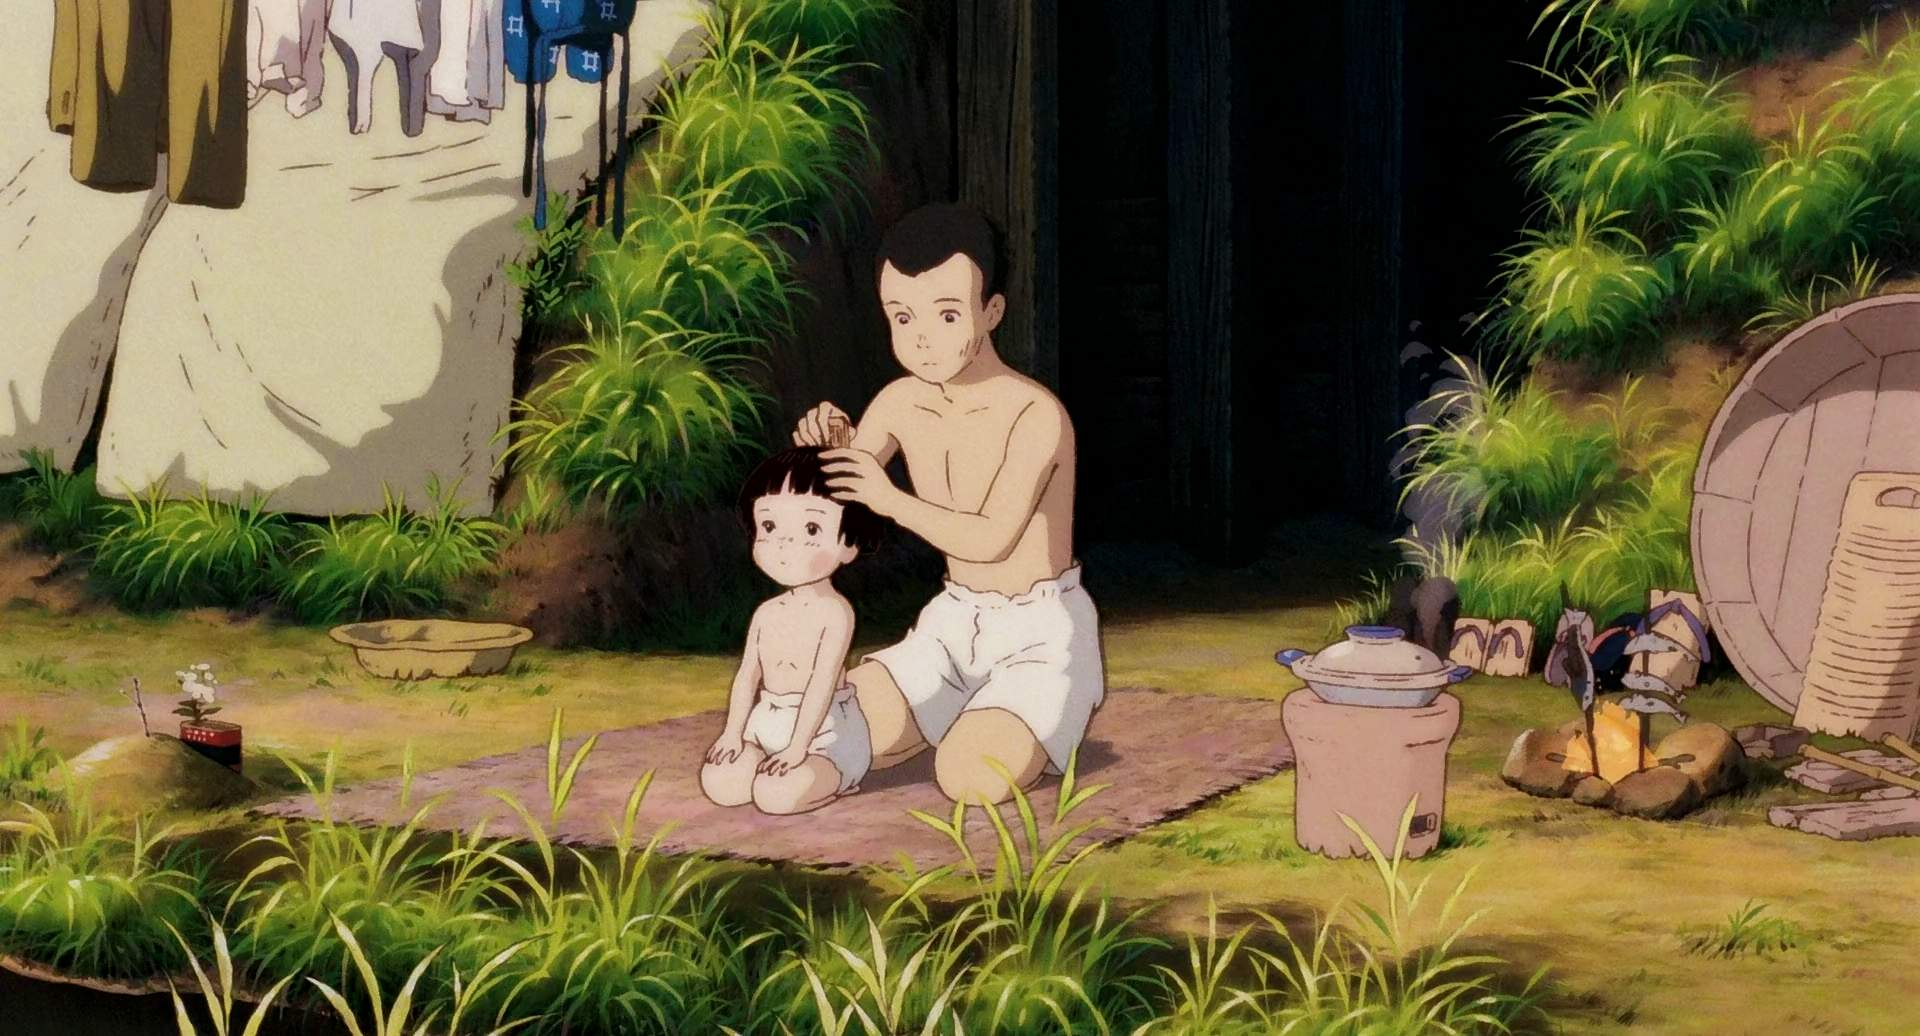 GraveoftheFireflies-Movie1988-SS5-O Grave of the Fireflies Movie Review